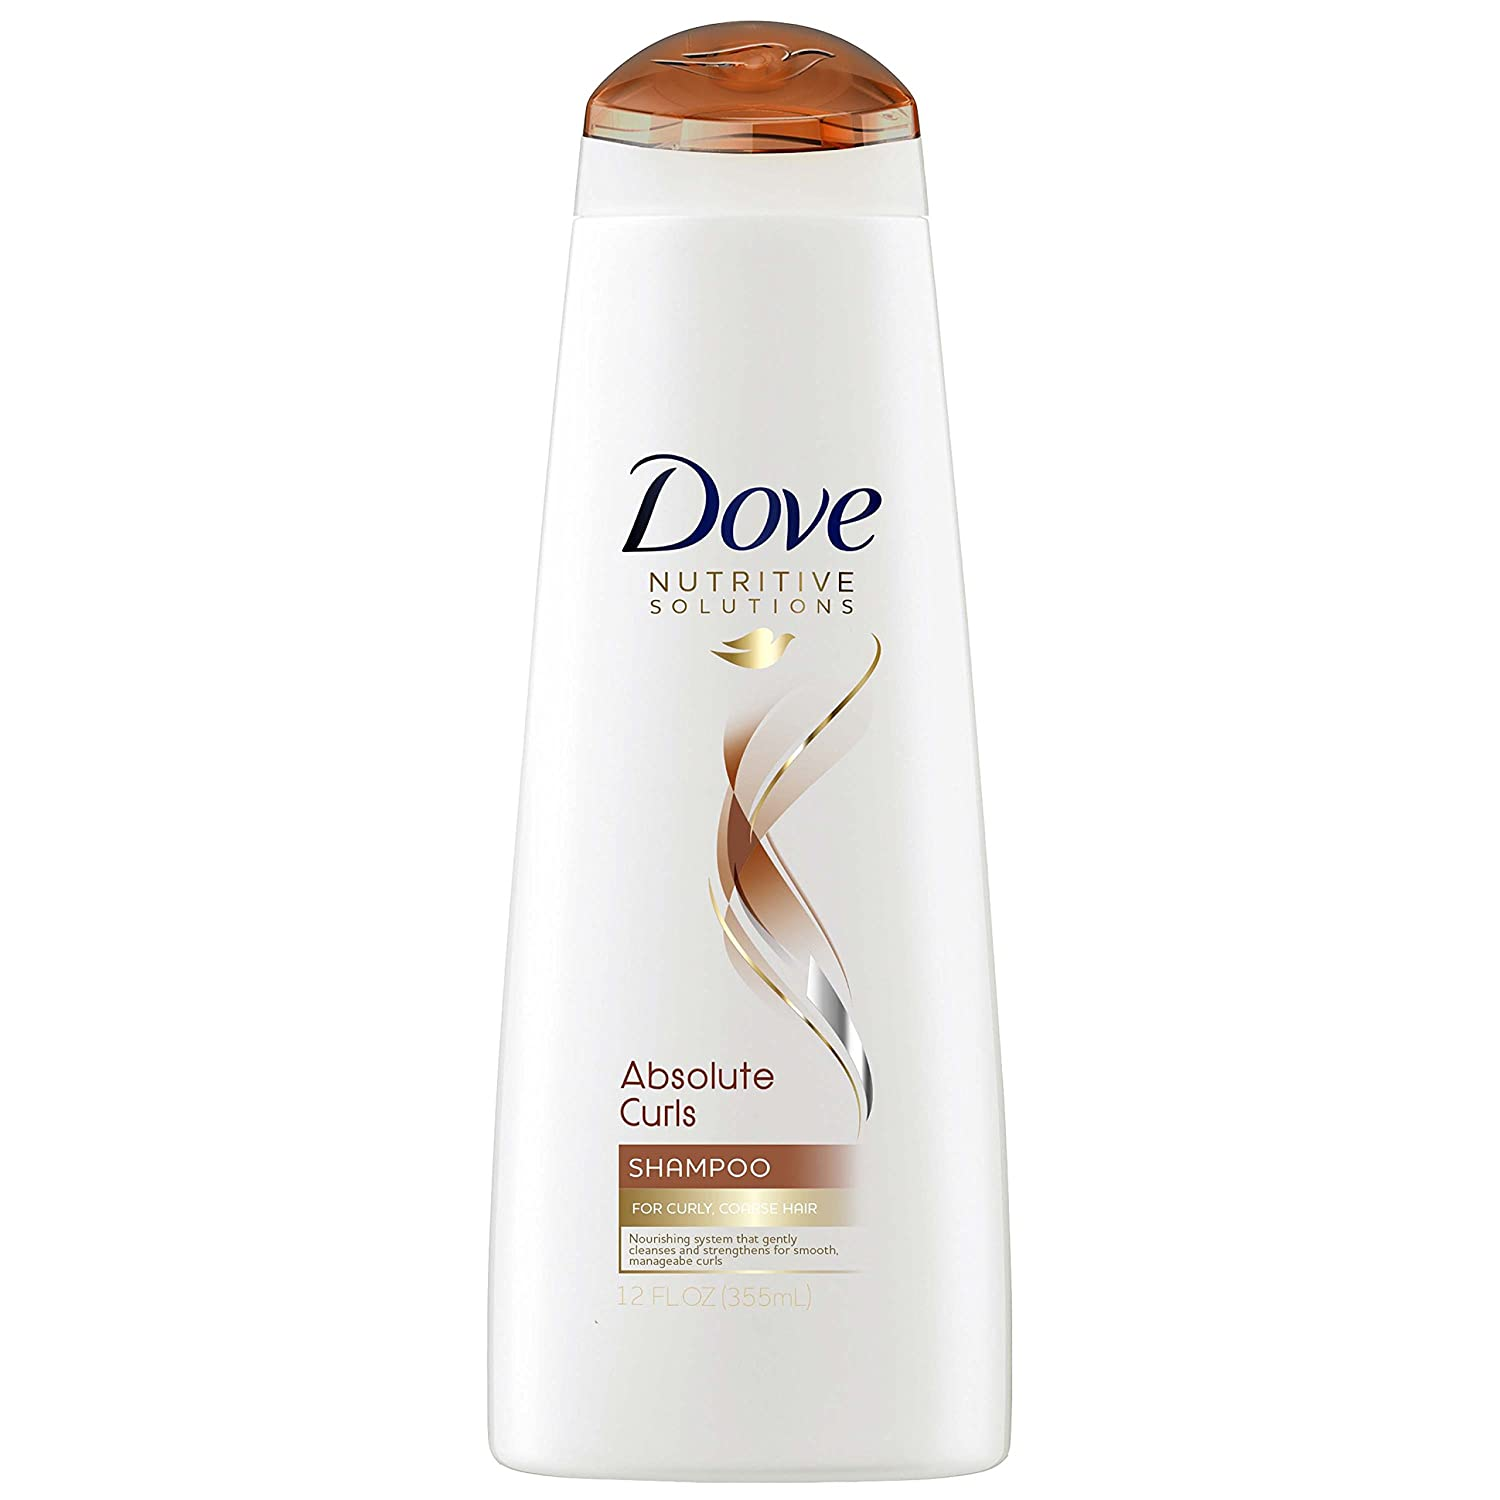 Dove Nutritive Solutions Shampoo, Absolute Curls 12 oz